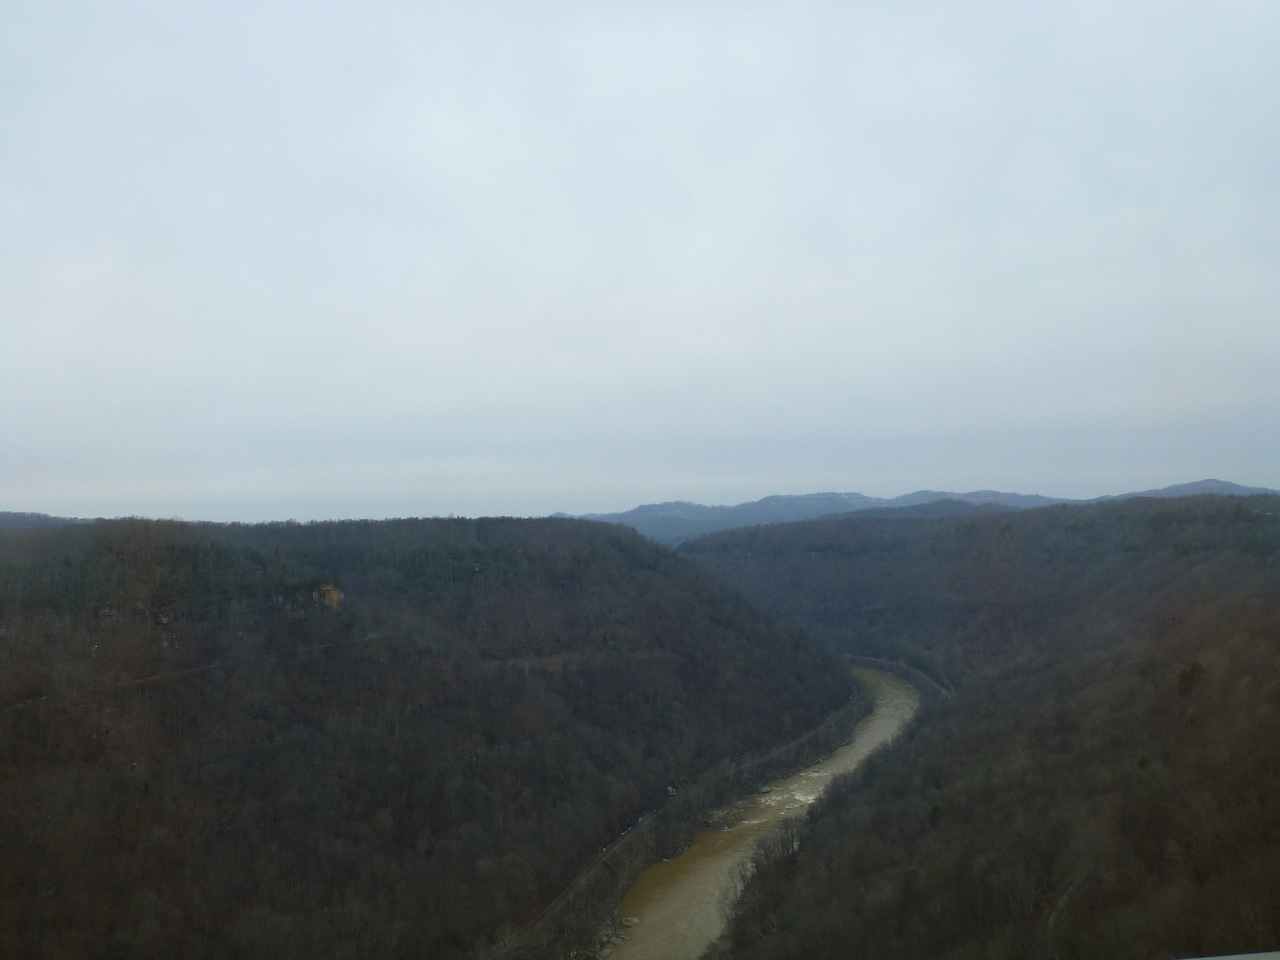 The View From The Longest Arch Bridge In The Western Hemisphere.